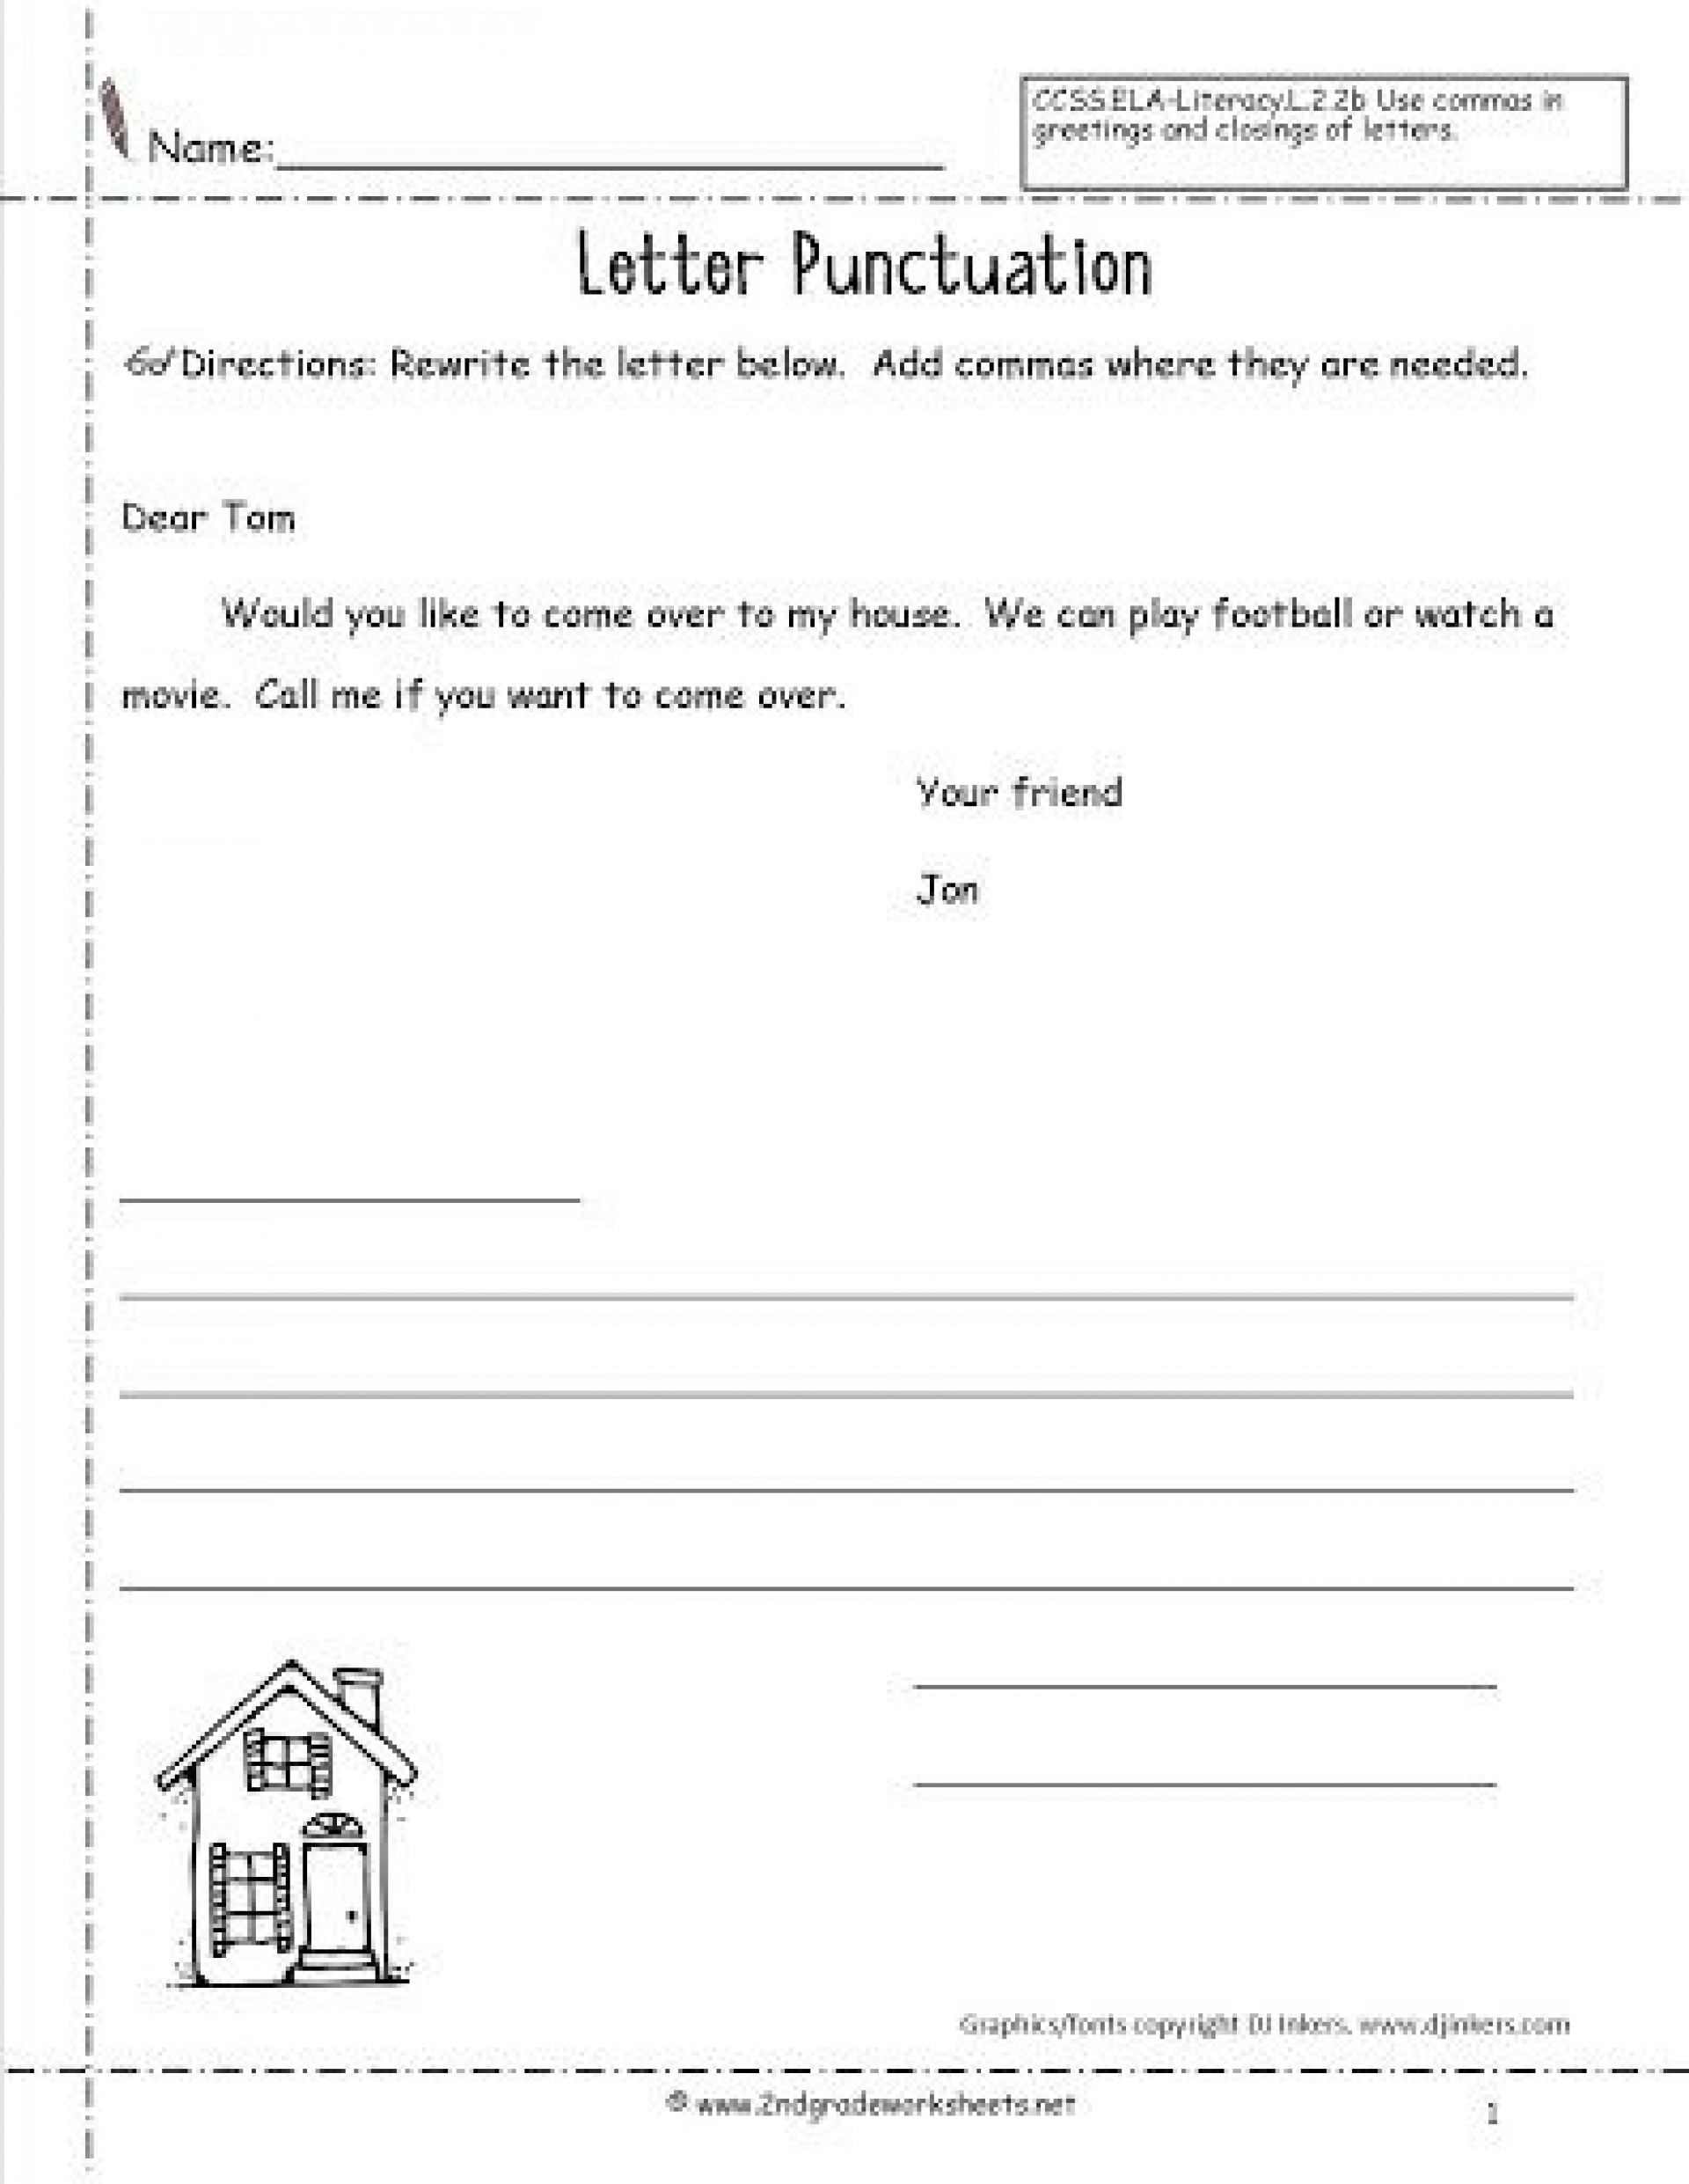 004 Remarkable Free Letter Writing Template 2nd Grade Sample 1920